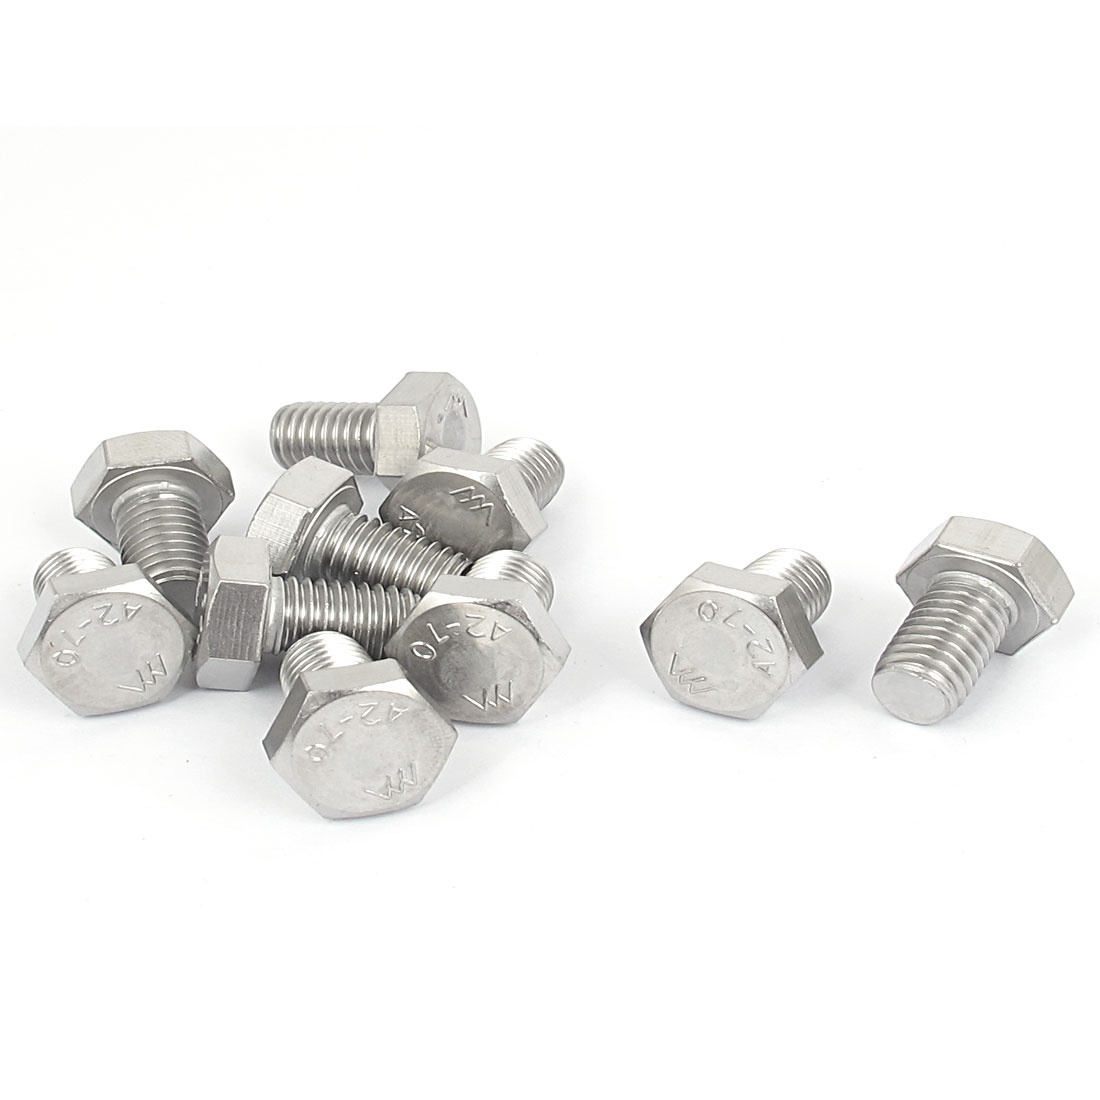 M10x16mm Thread 304 Stainless Steel Hexagonal Hex Head Bolt 10pcs